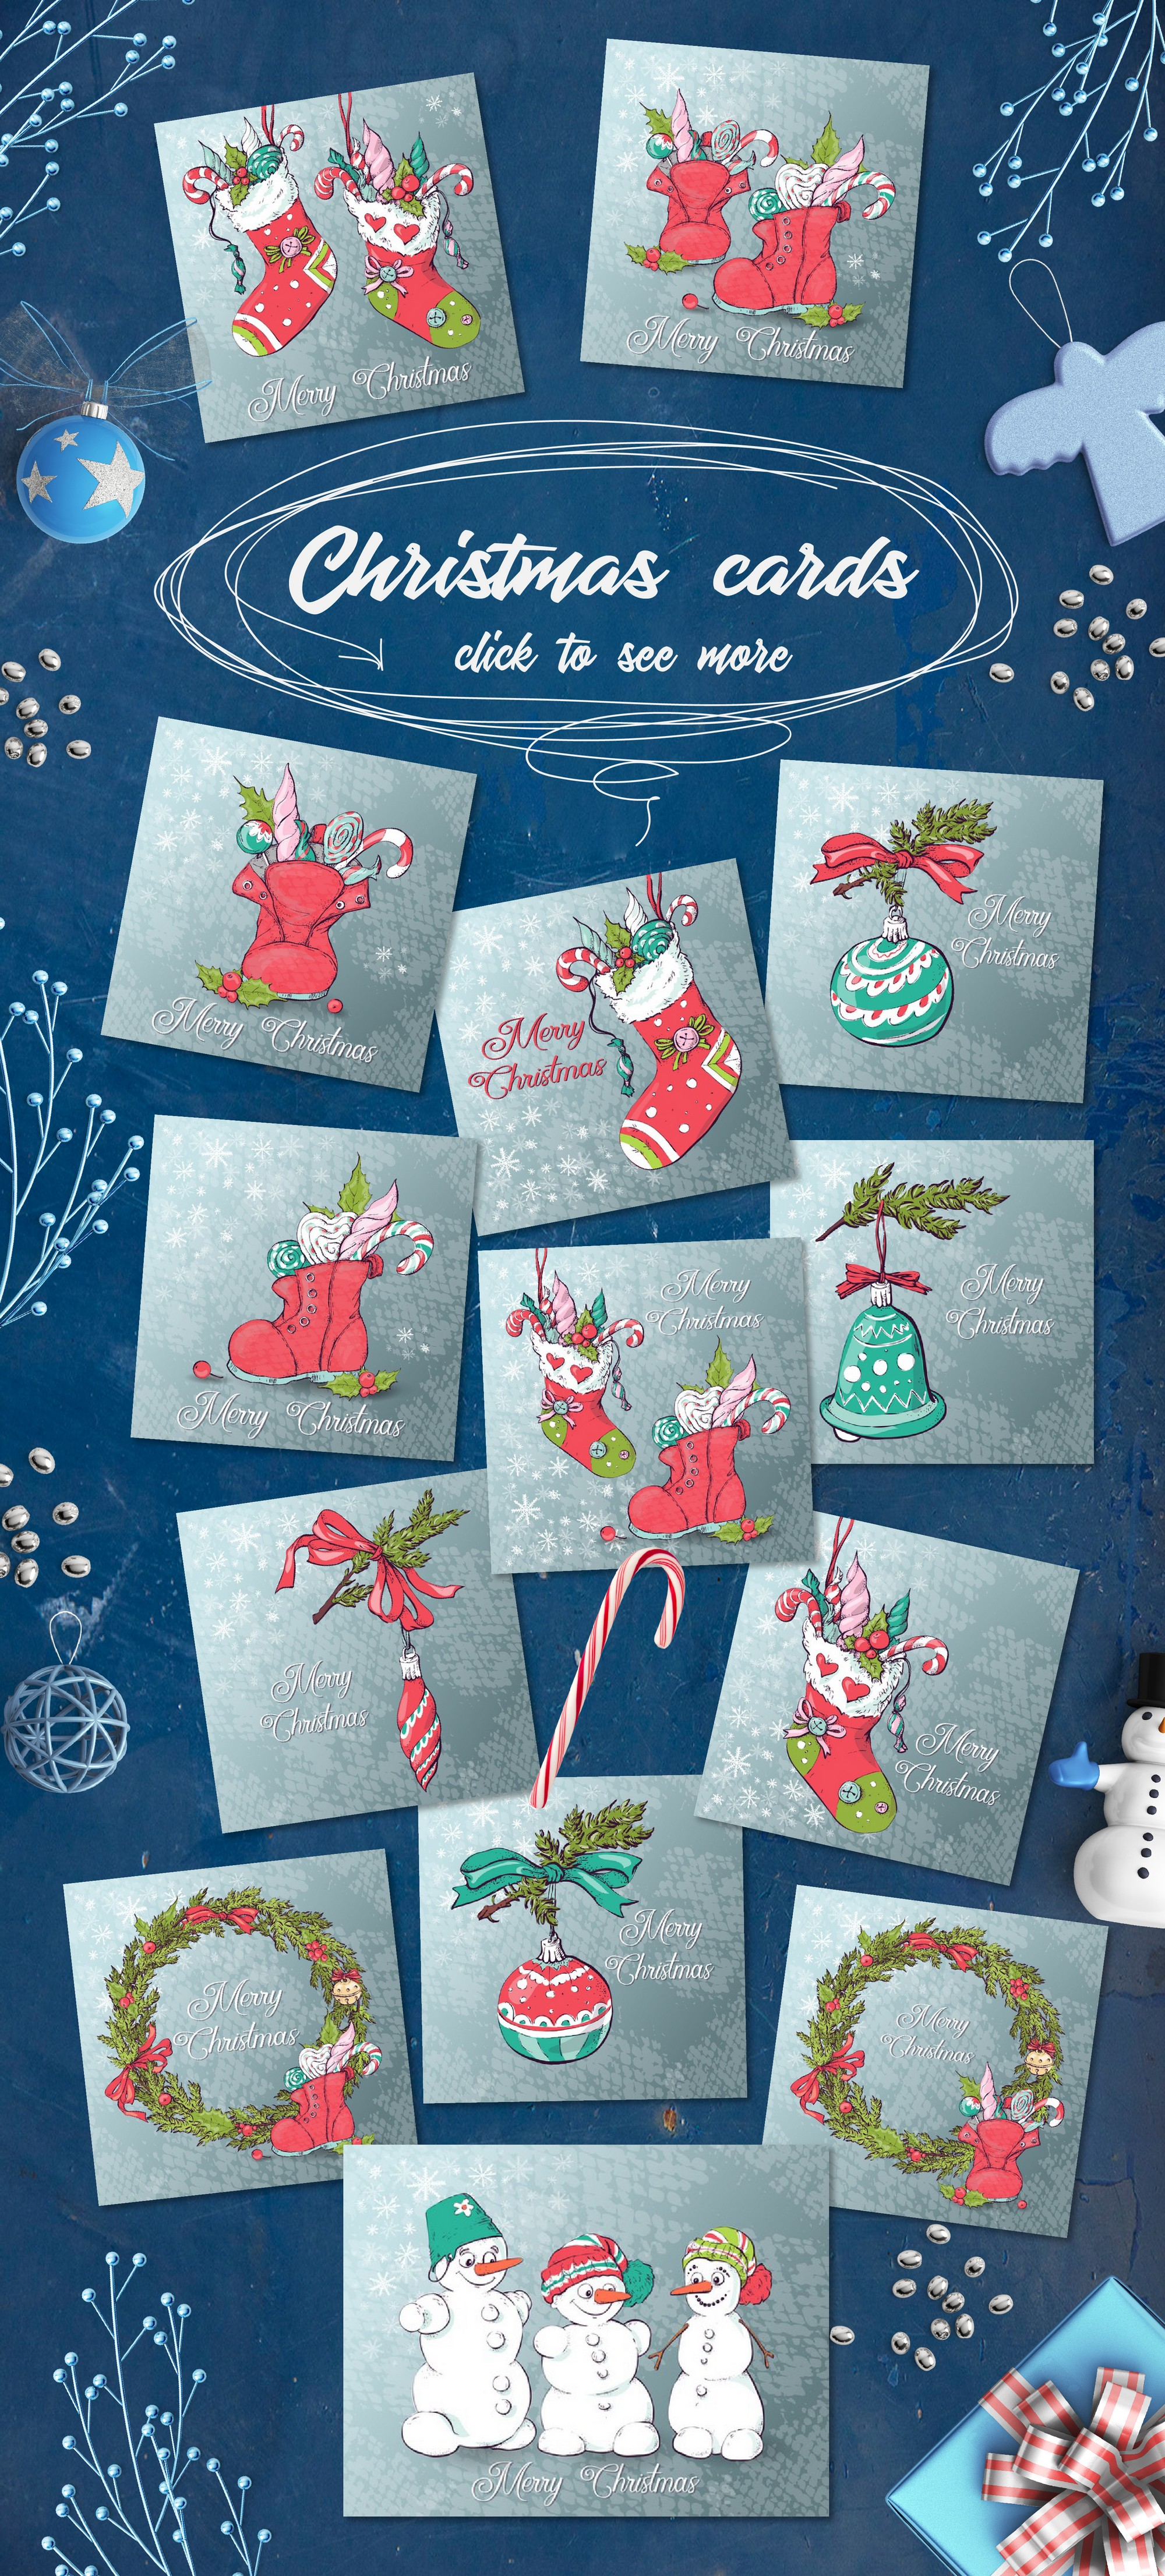 Download Free Merry Christmas Graphic Collection Graphic By Nicjulia for Cricut Explore, Silhouette and other cutting machines.